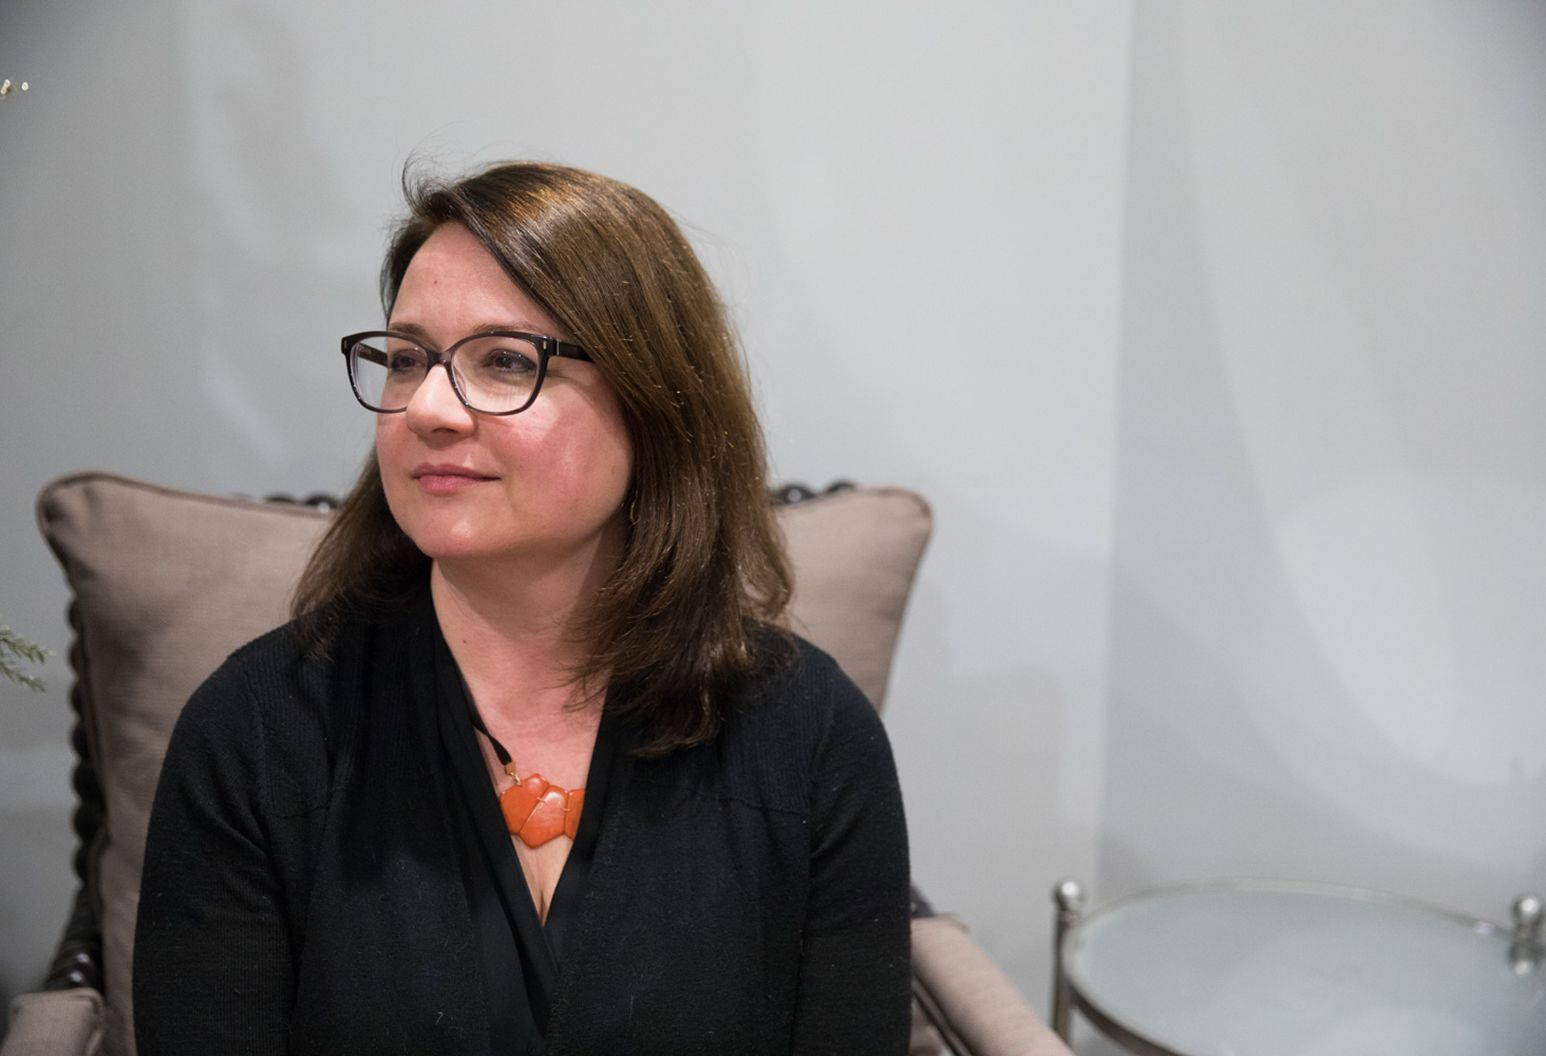 A woman with shoulder length brown hair wears glasses. She wears a black shirt and orange necklace. She is sitting on a grey chair with a pillow behind her.